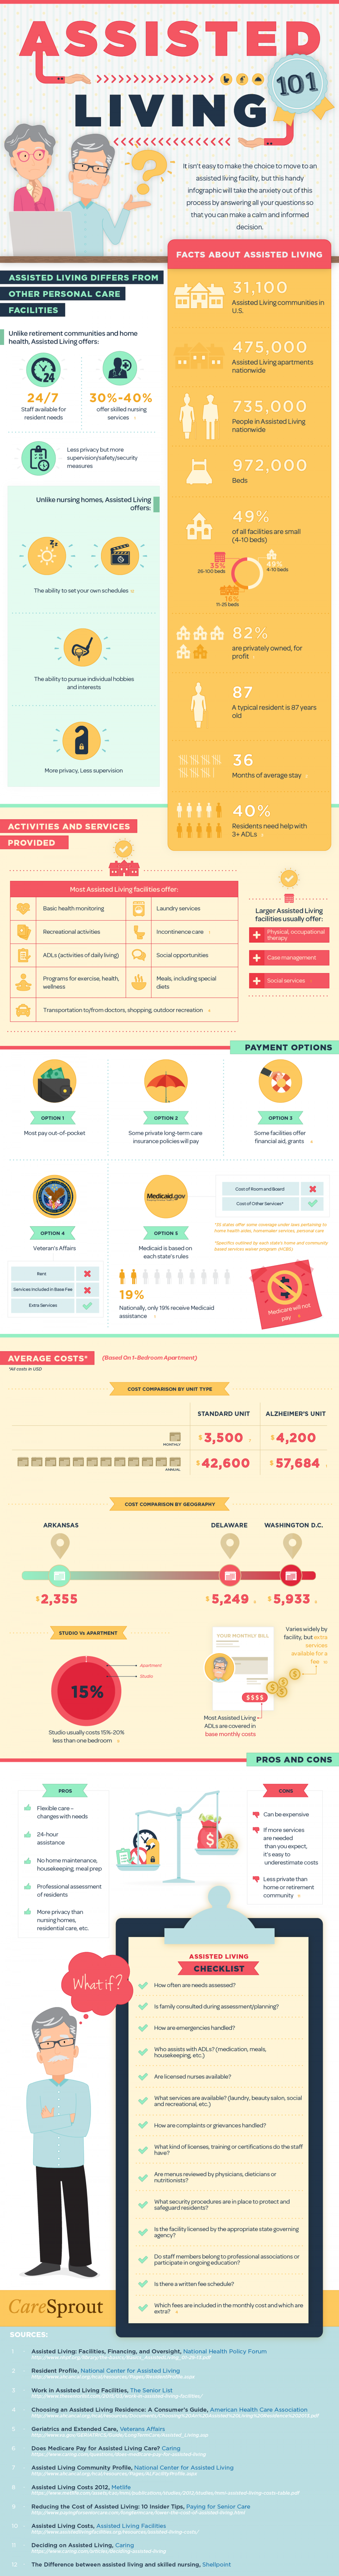 Assisted Living 101 Infographic